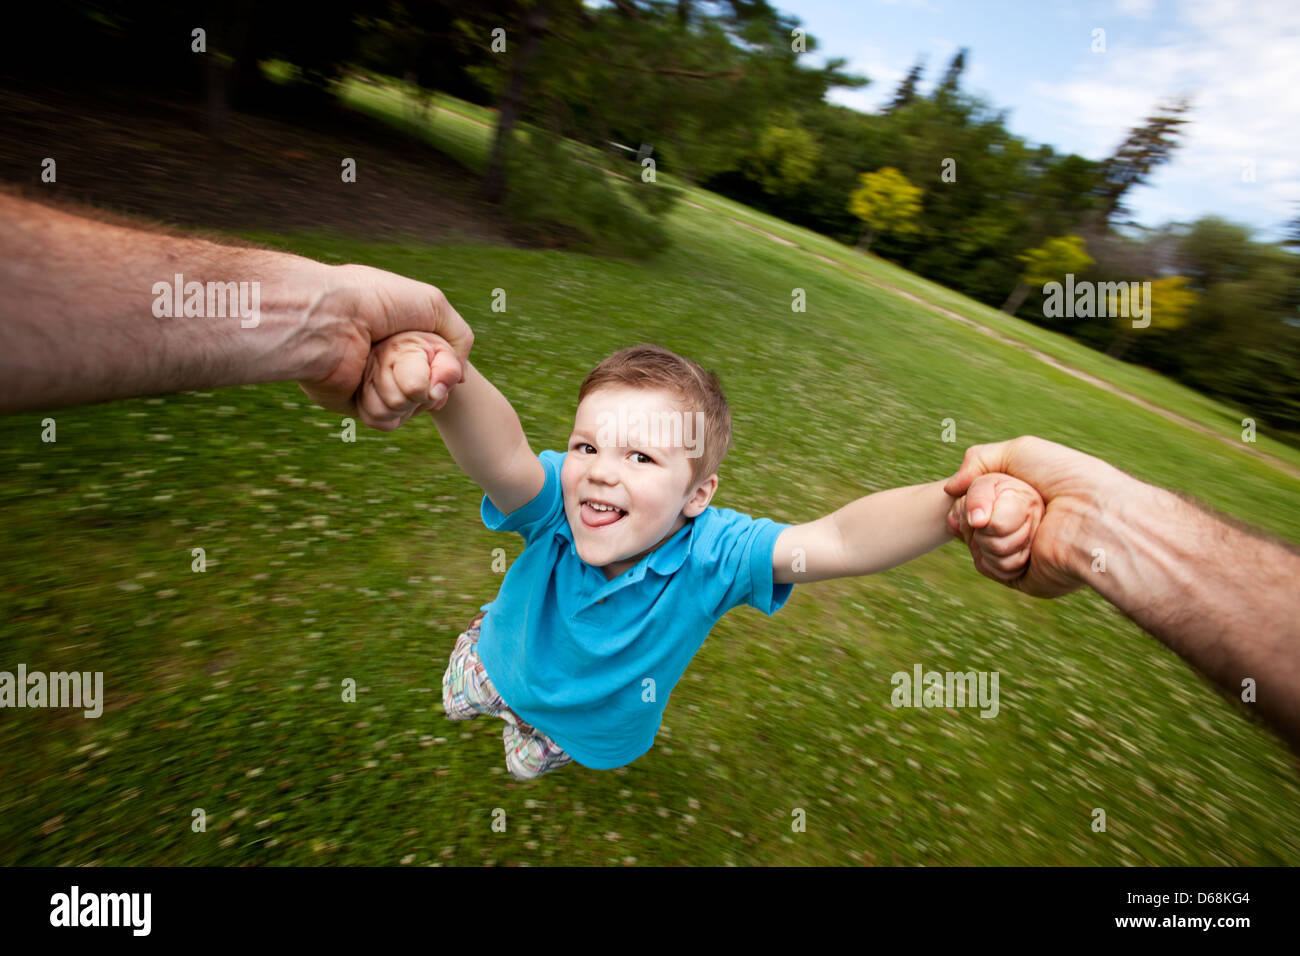 Father Spinning Son Outdoors in Park Stock Photo